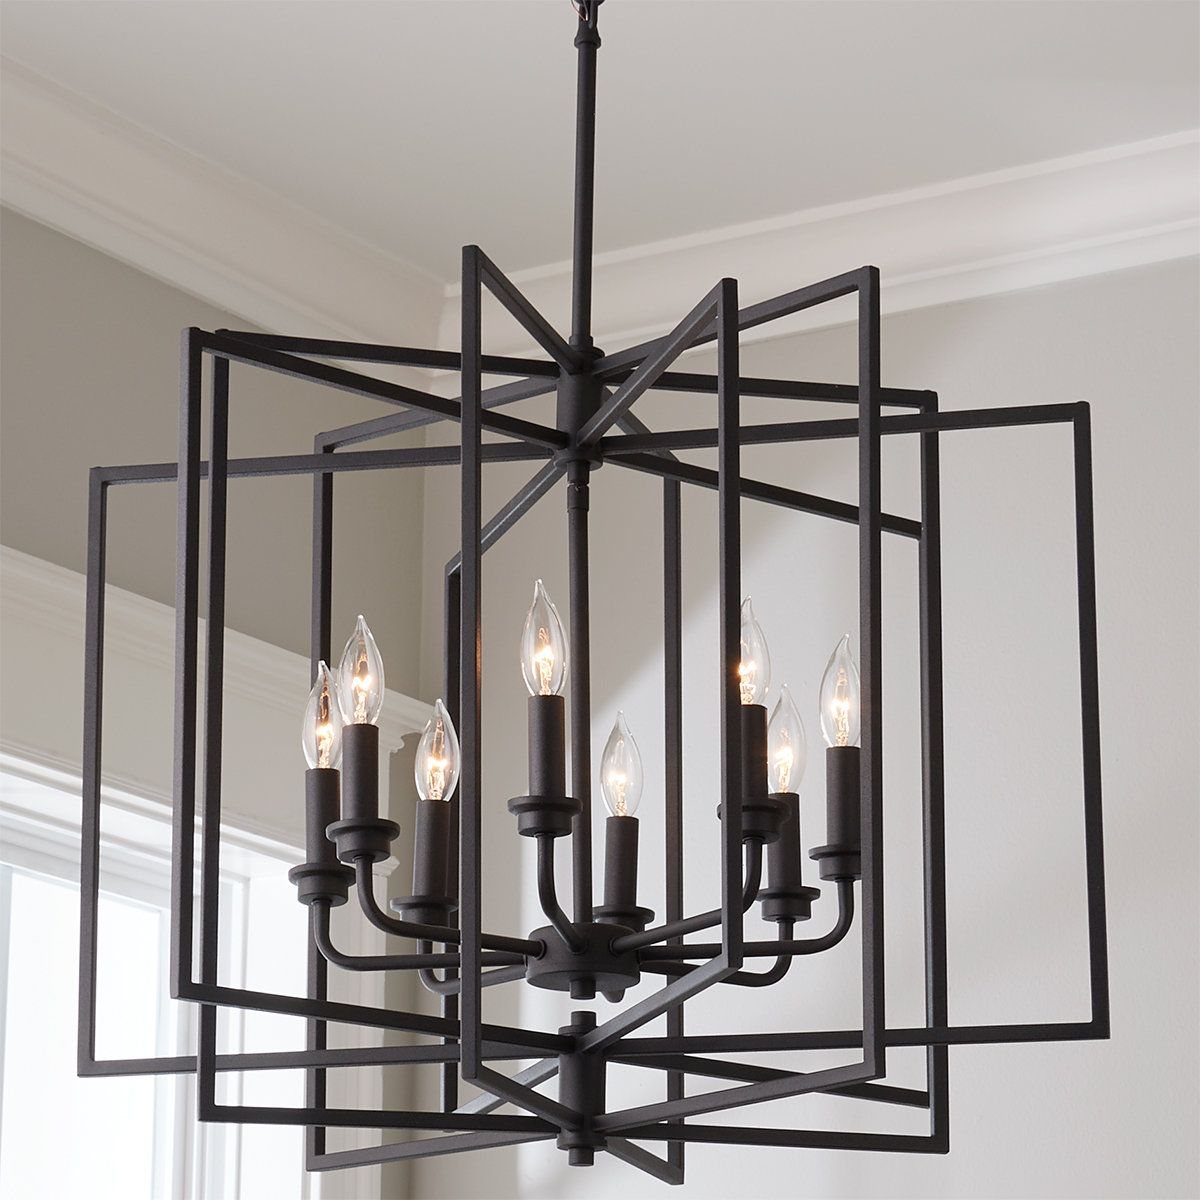 Crystorama Lighting Group Weston Matte Black And Antique Gold 14 Inch Four Light Pendant Wes 9905 Bk Ga Black Pendant Light Kitchen Lantern Pendant Lighting Lights Over Kitchen Island